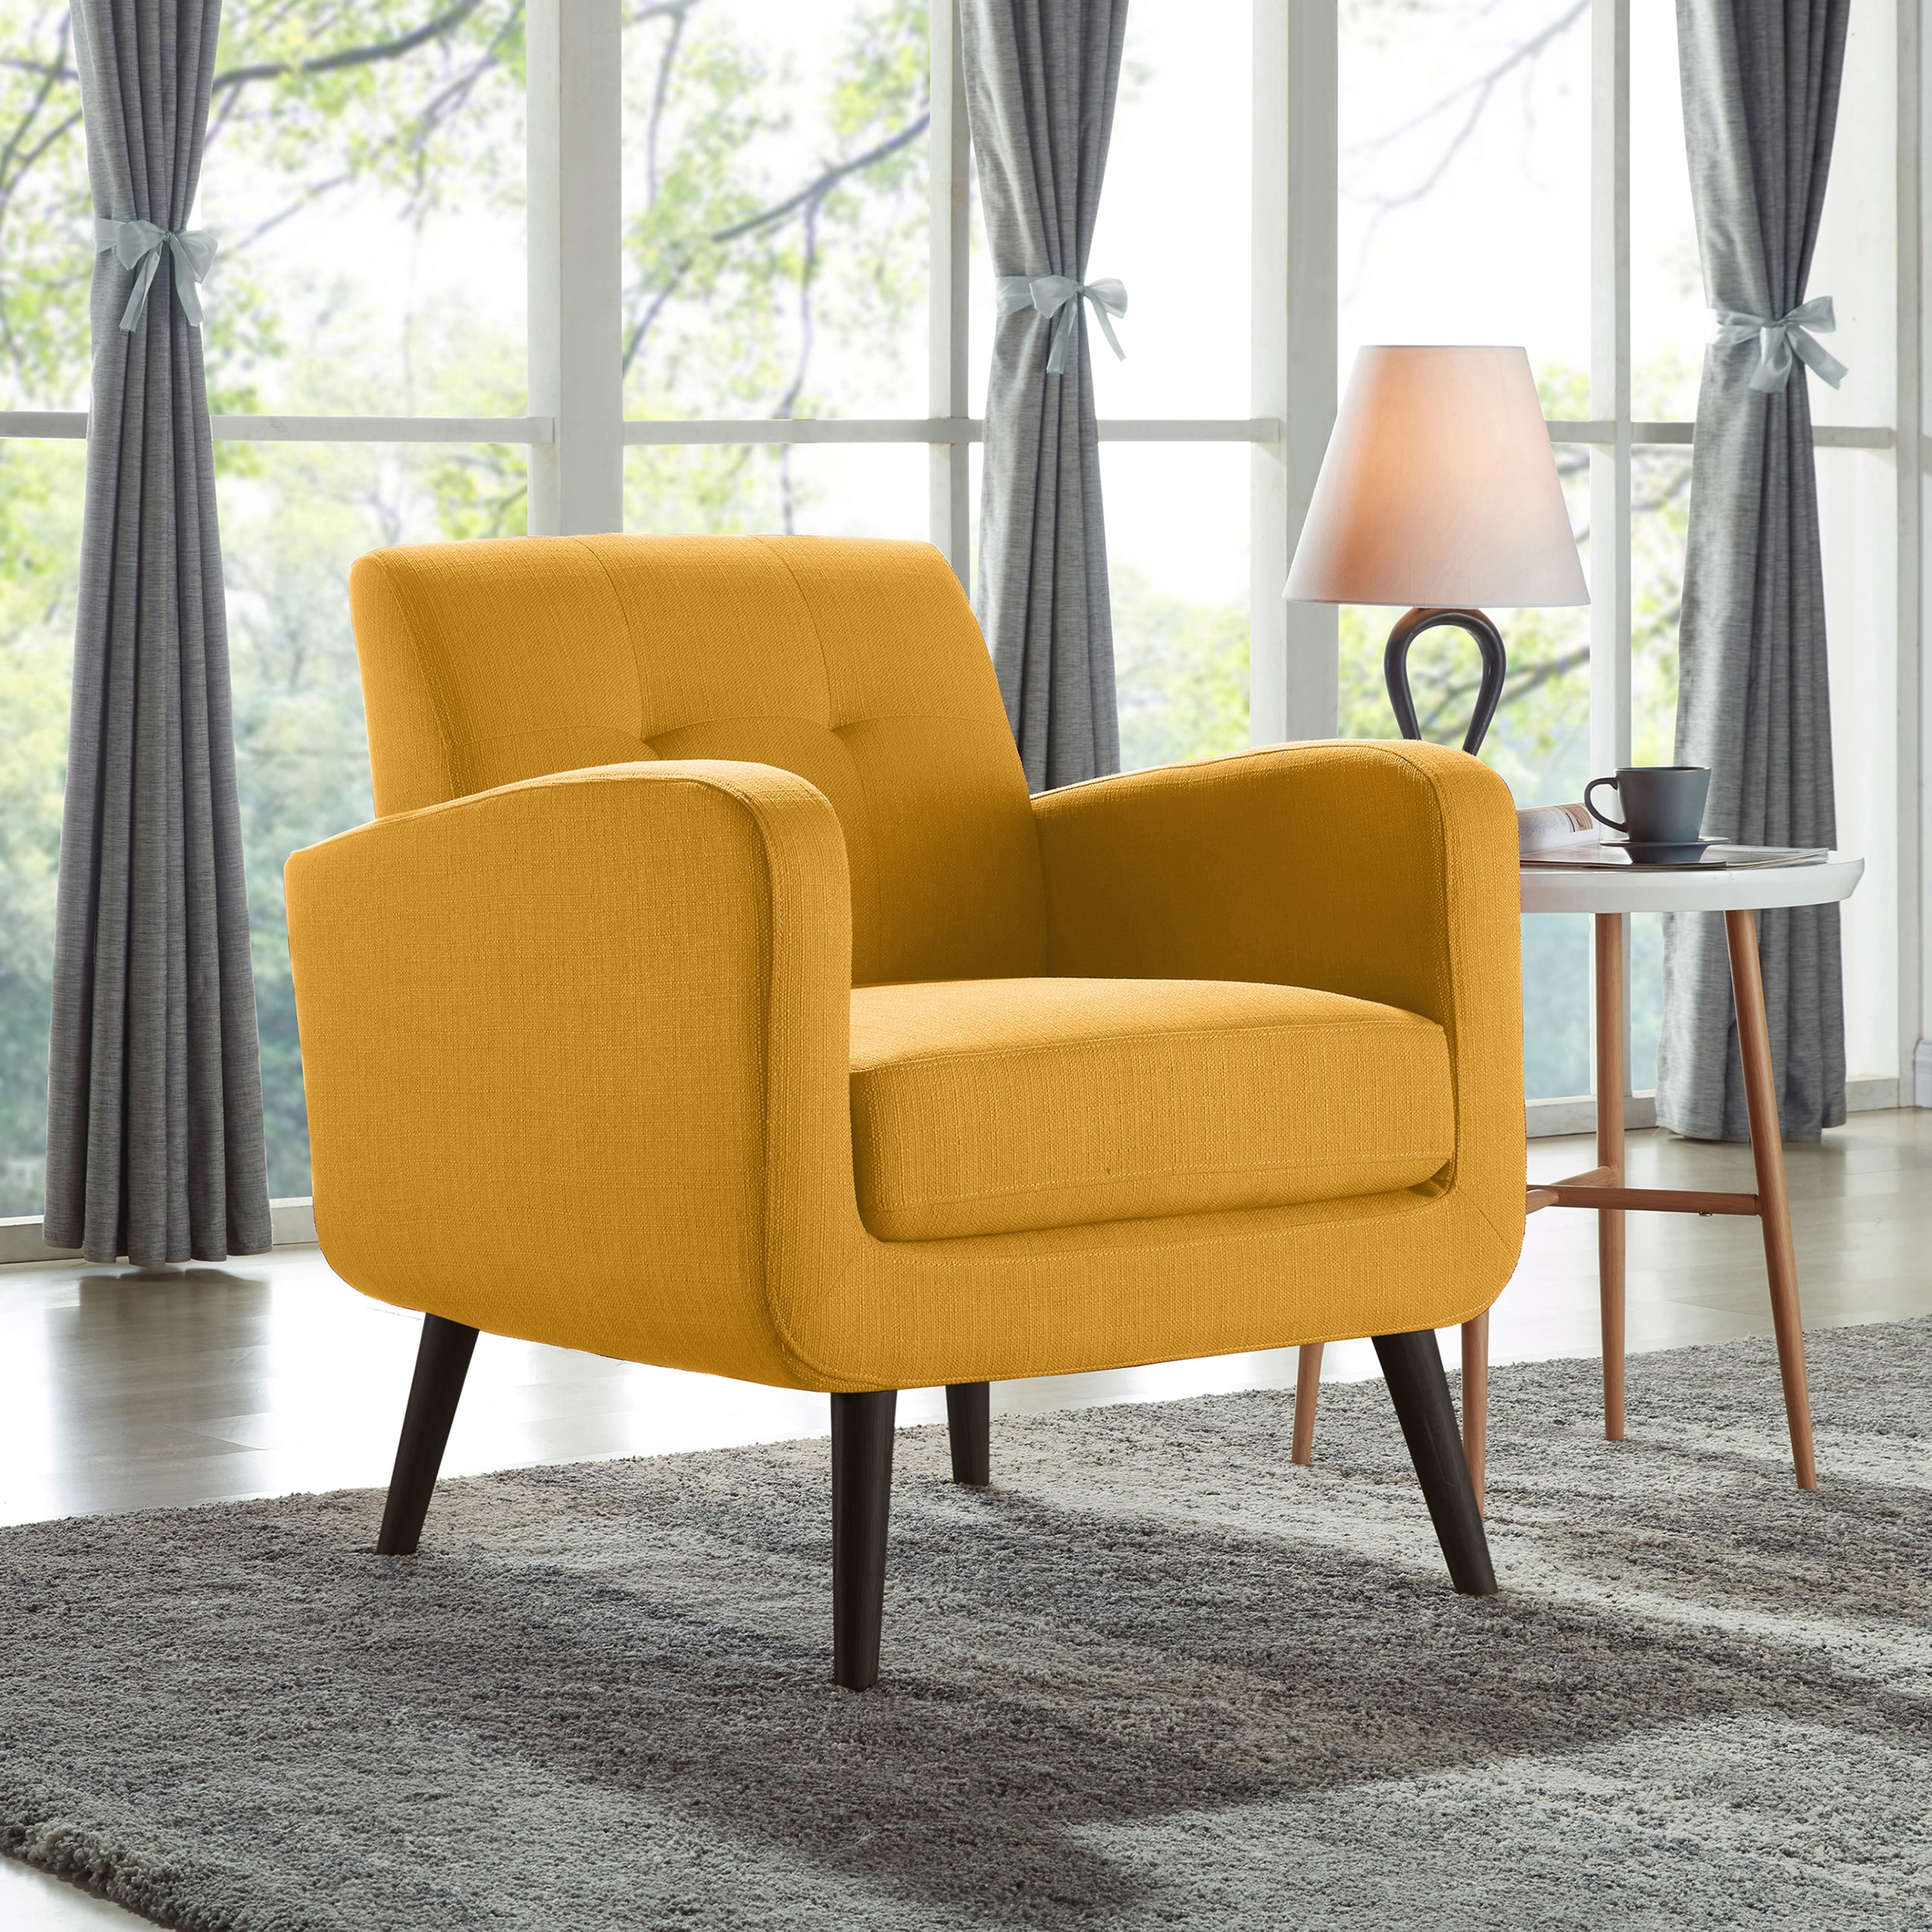 Enjoyable Accent Chairs Shop Online At Overstock Machost Co Dining Chair Design Ideas Machostcouk